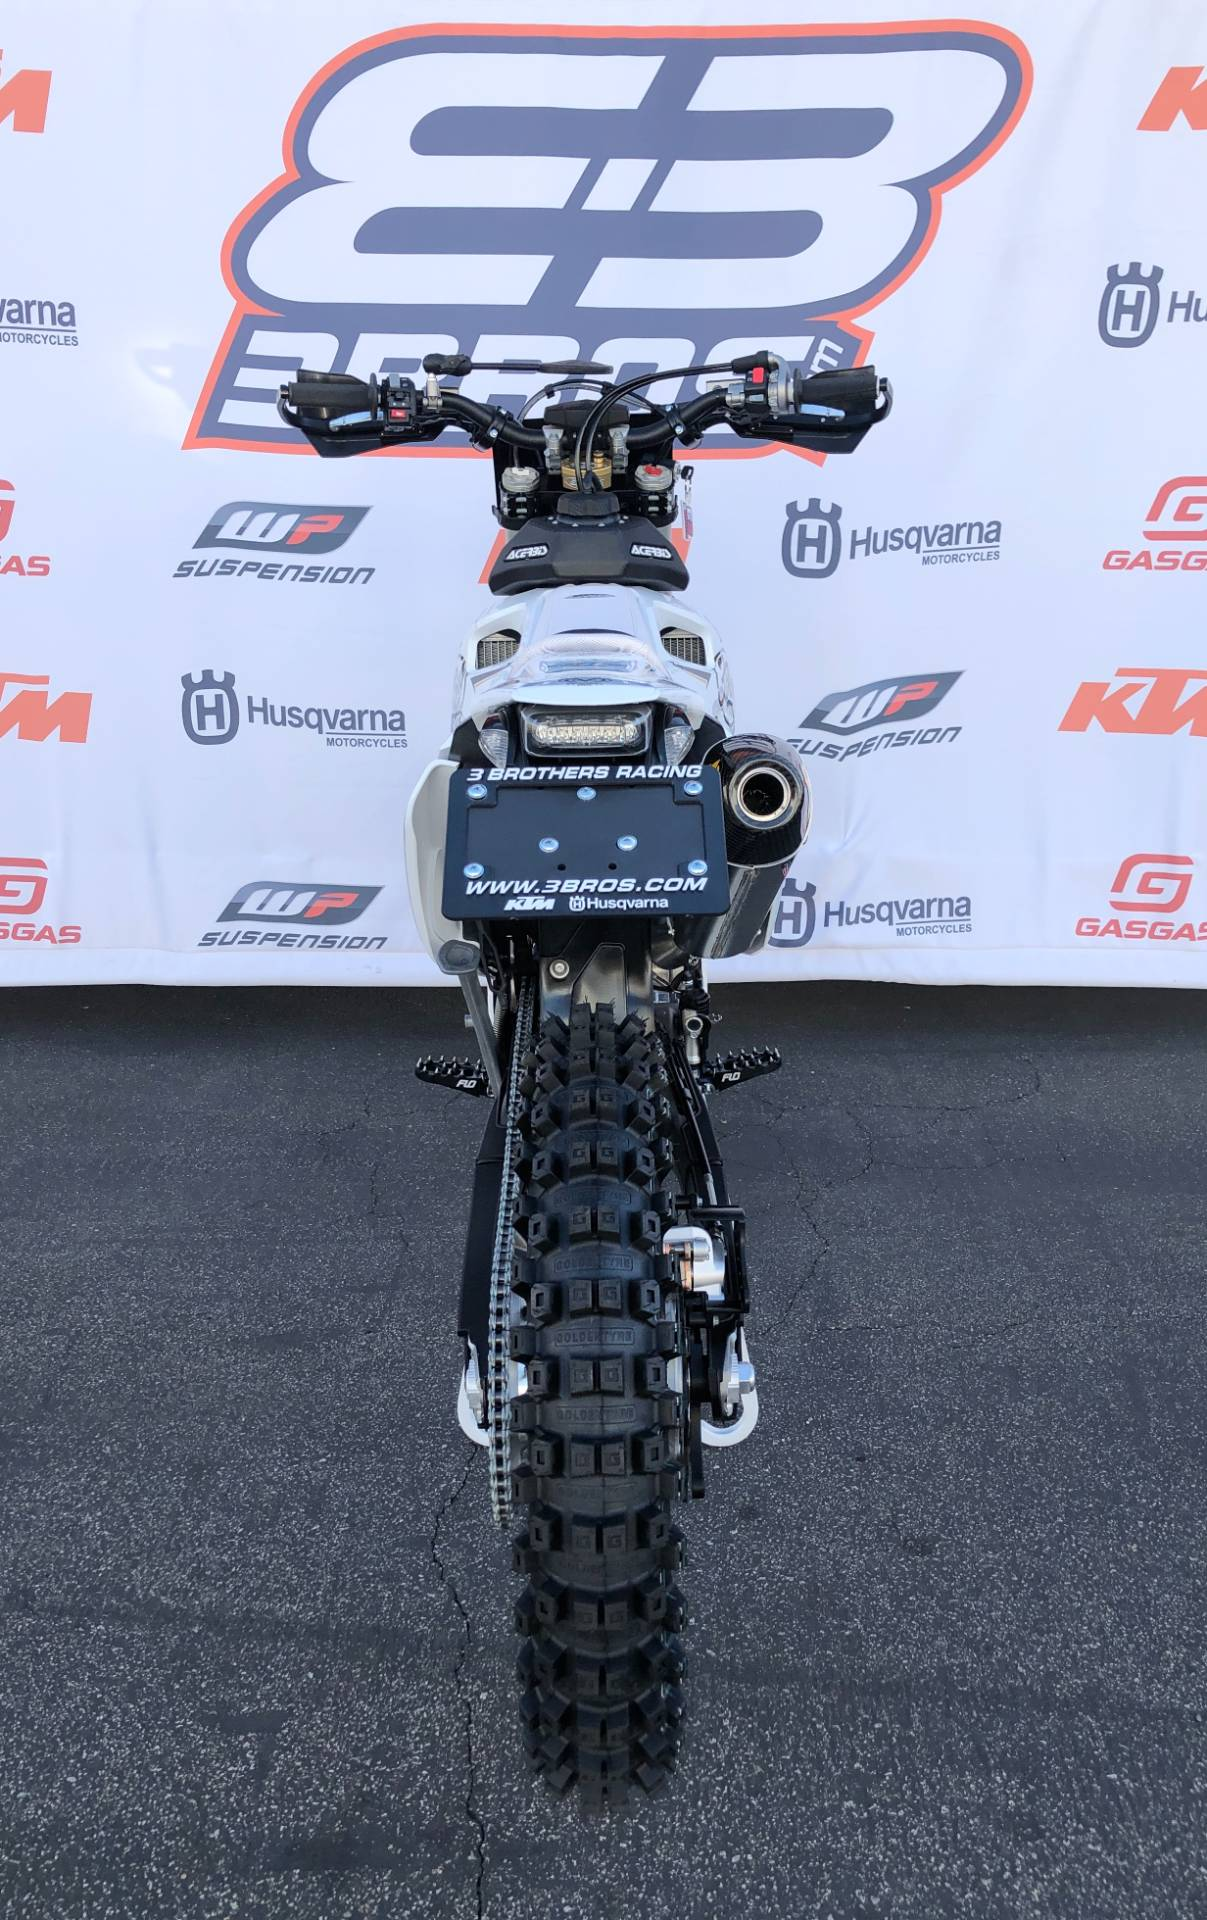 2021 Husqvarna FE 501s in Costa Mesa, California - Photo 6